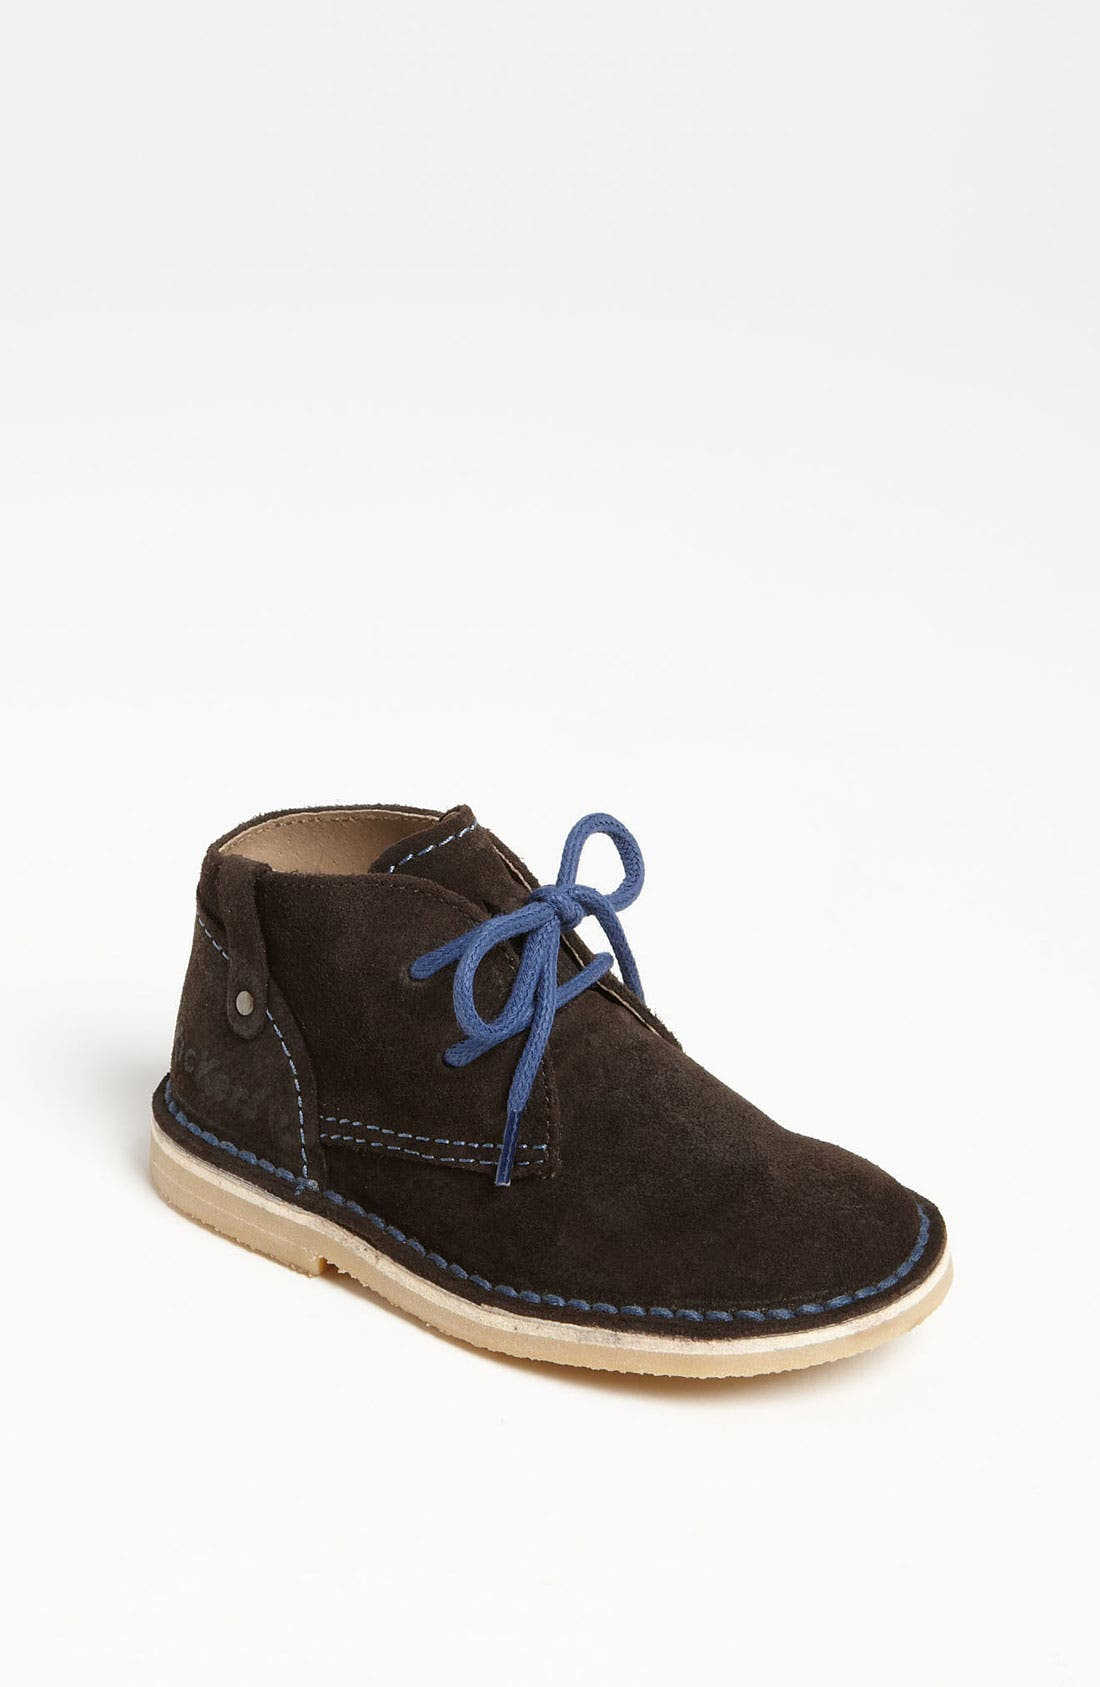 Alternate Image 1 Selected - Kickers 'Corentine' Boot (Toddler & Little Kid)